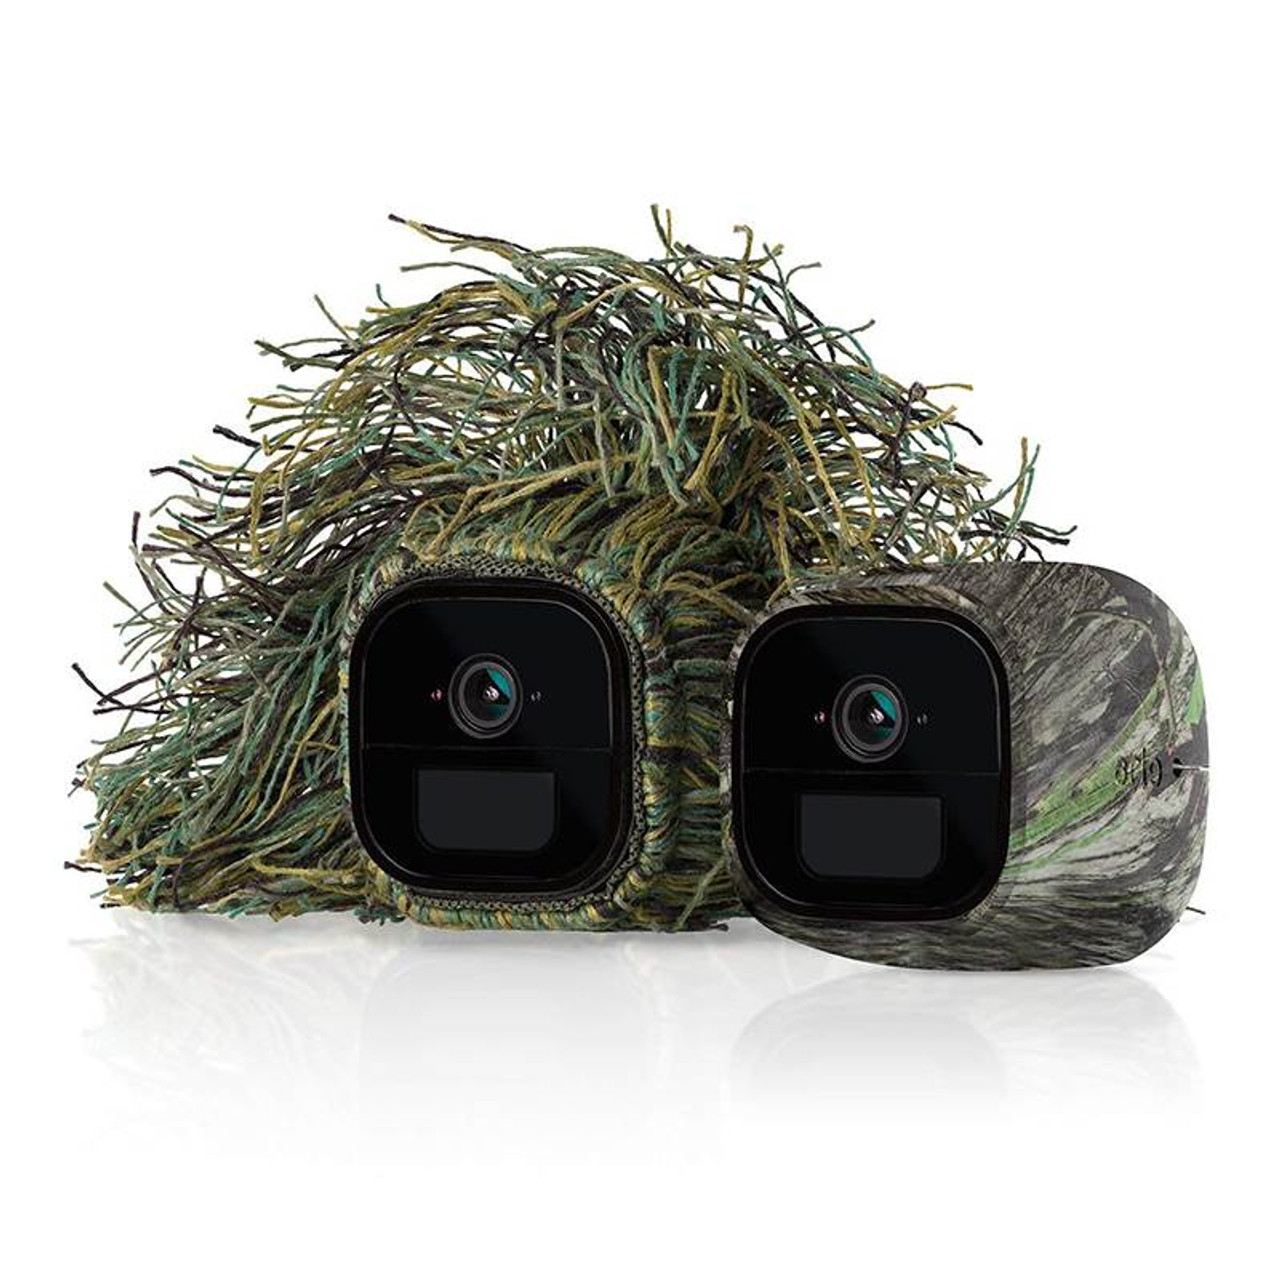 Image for Arlo Go Silicone Skins - Mossy Oak Camouflage/Ghillie Set of 2 CX Computer Superstore